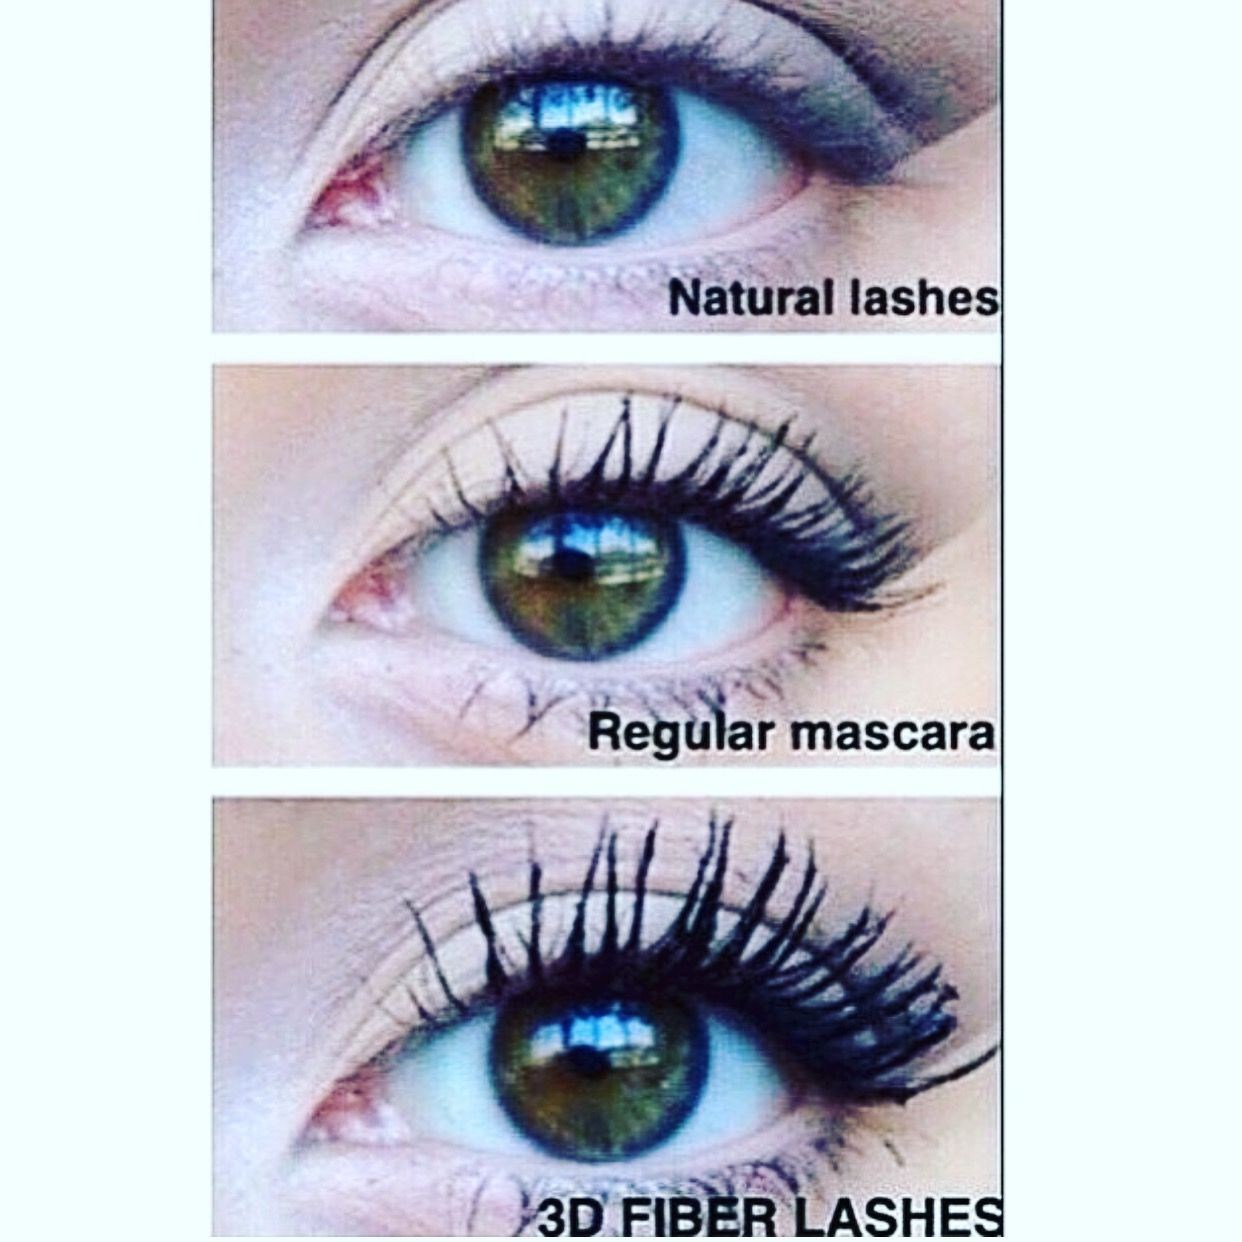 Increase your average lash volume by up to 400%